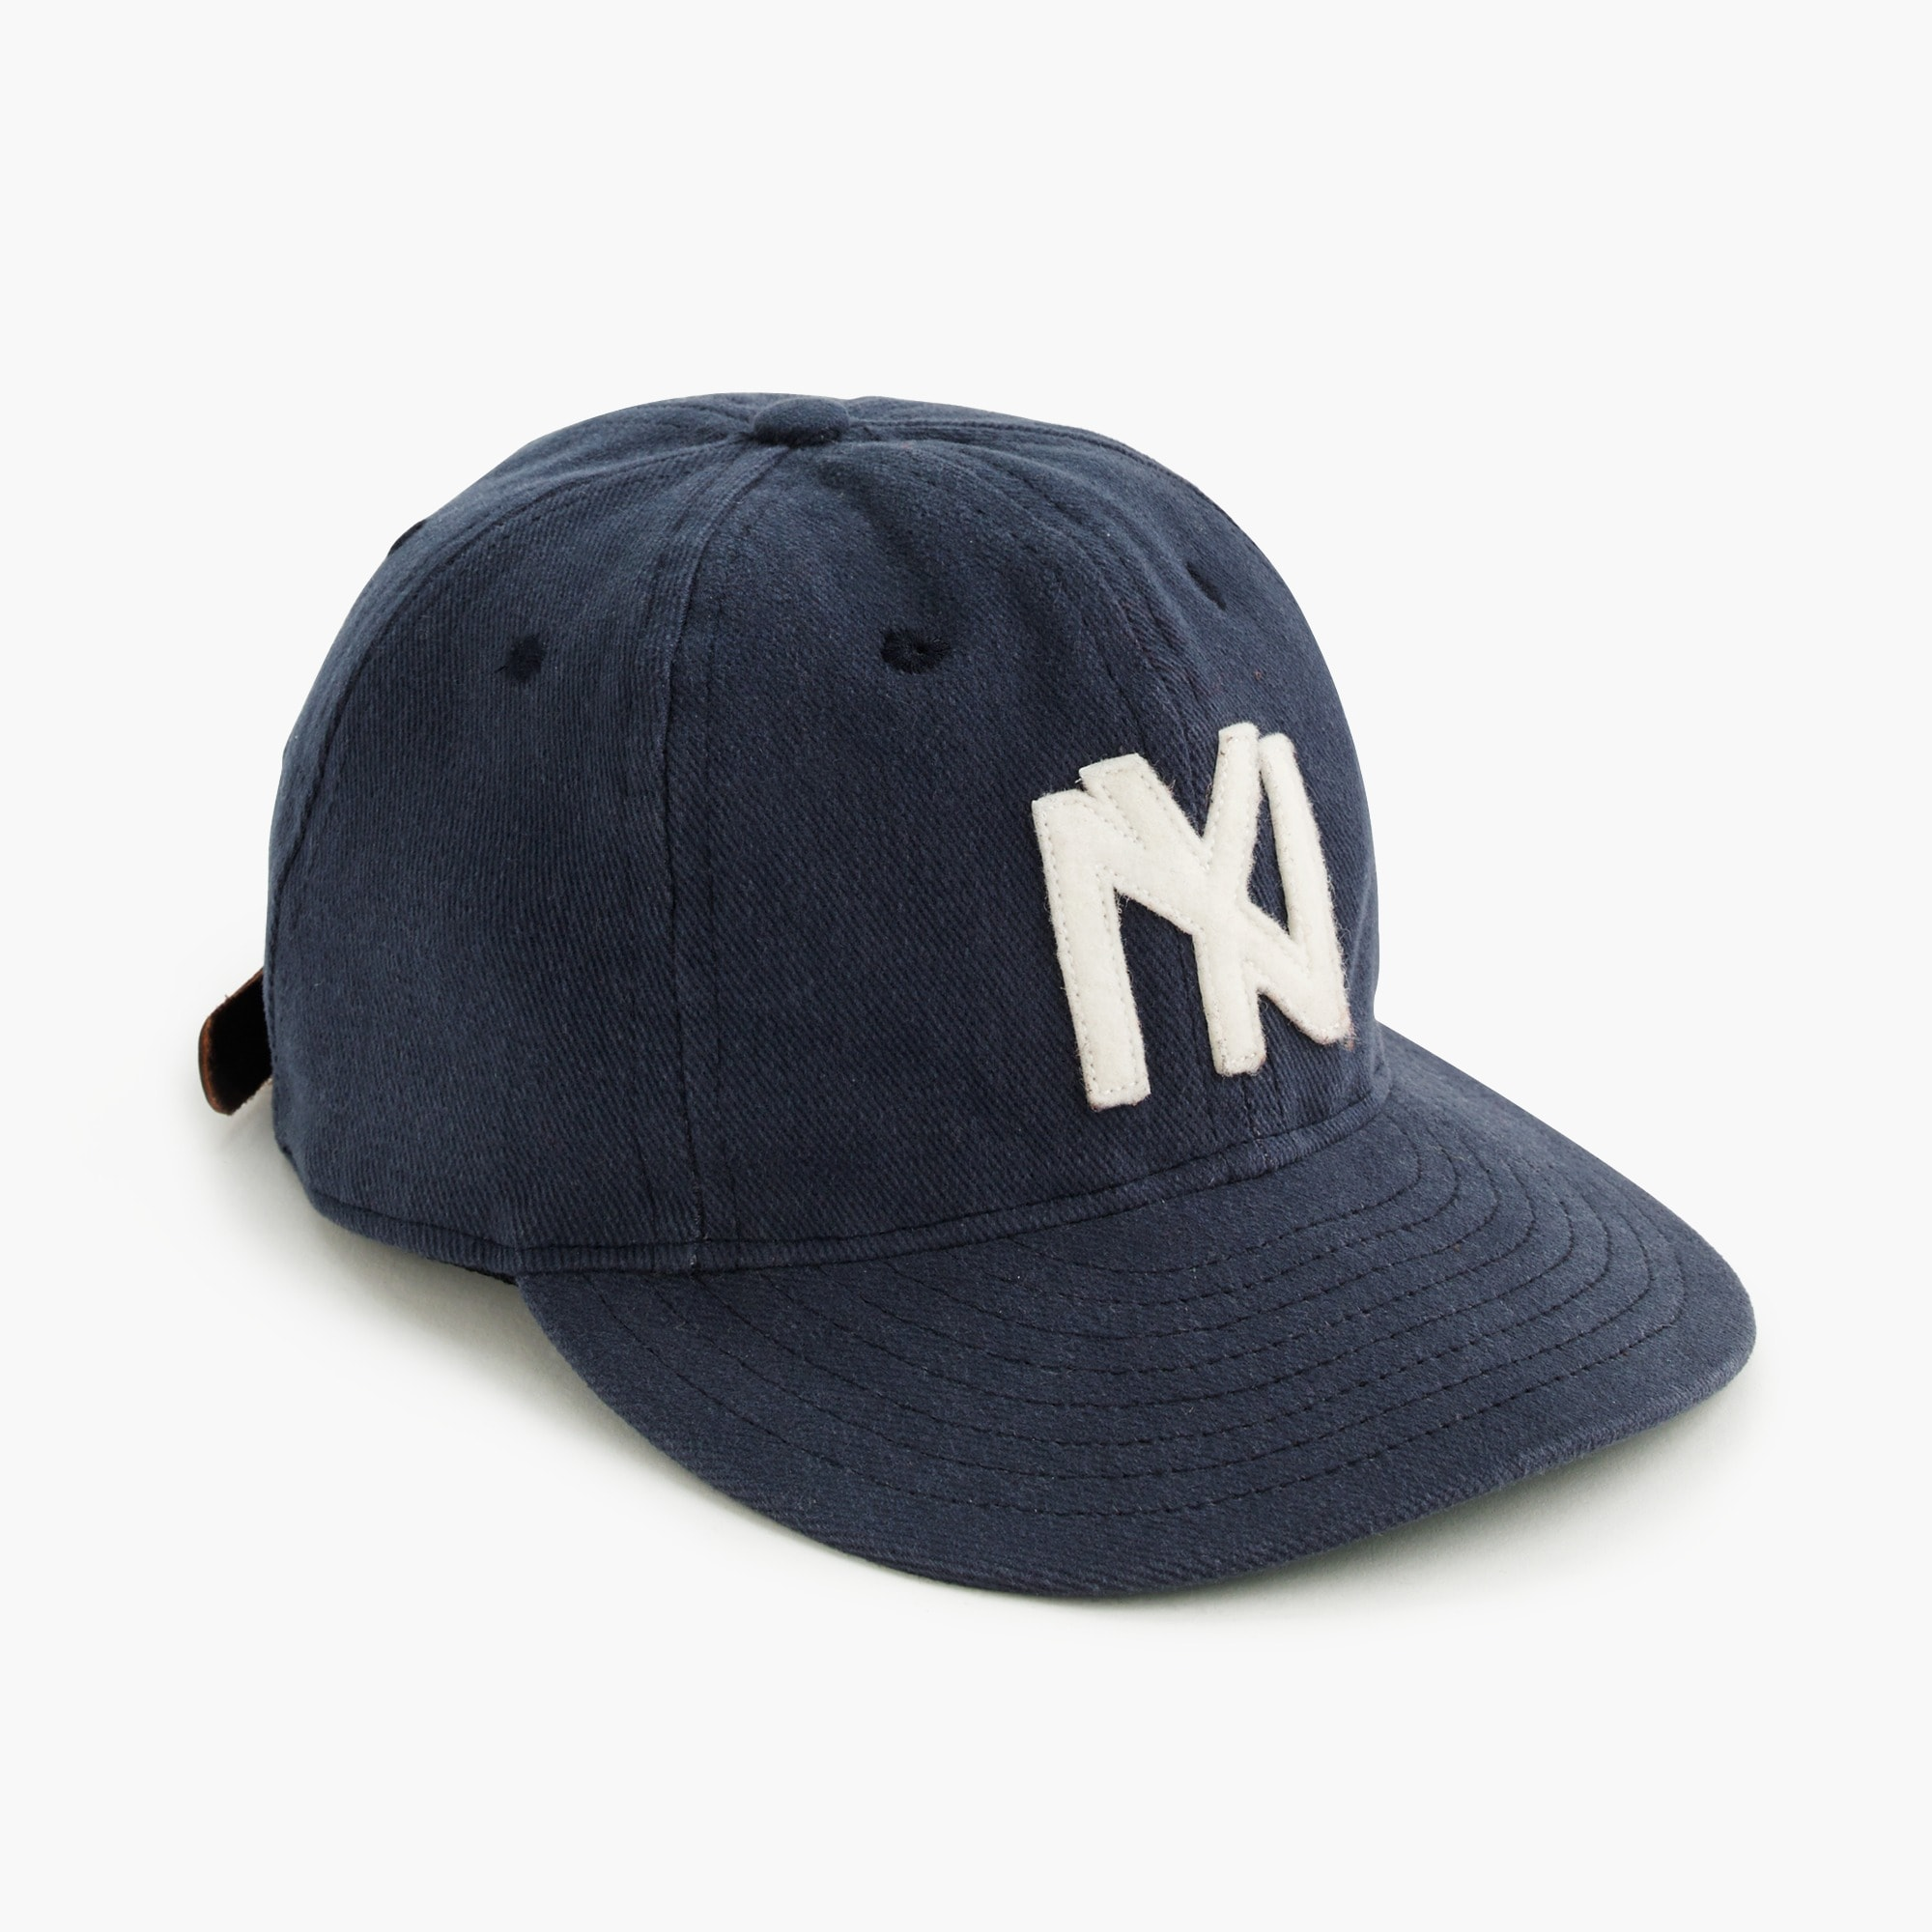 Ebbets Field Flannels® for J.Crew Brooklyn Eagles ball cap men j.crew in good company c